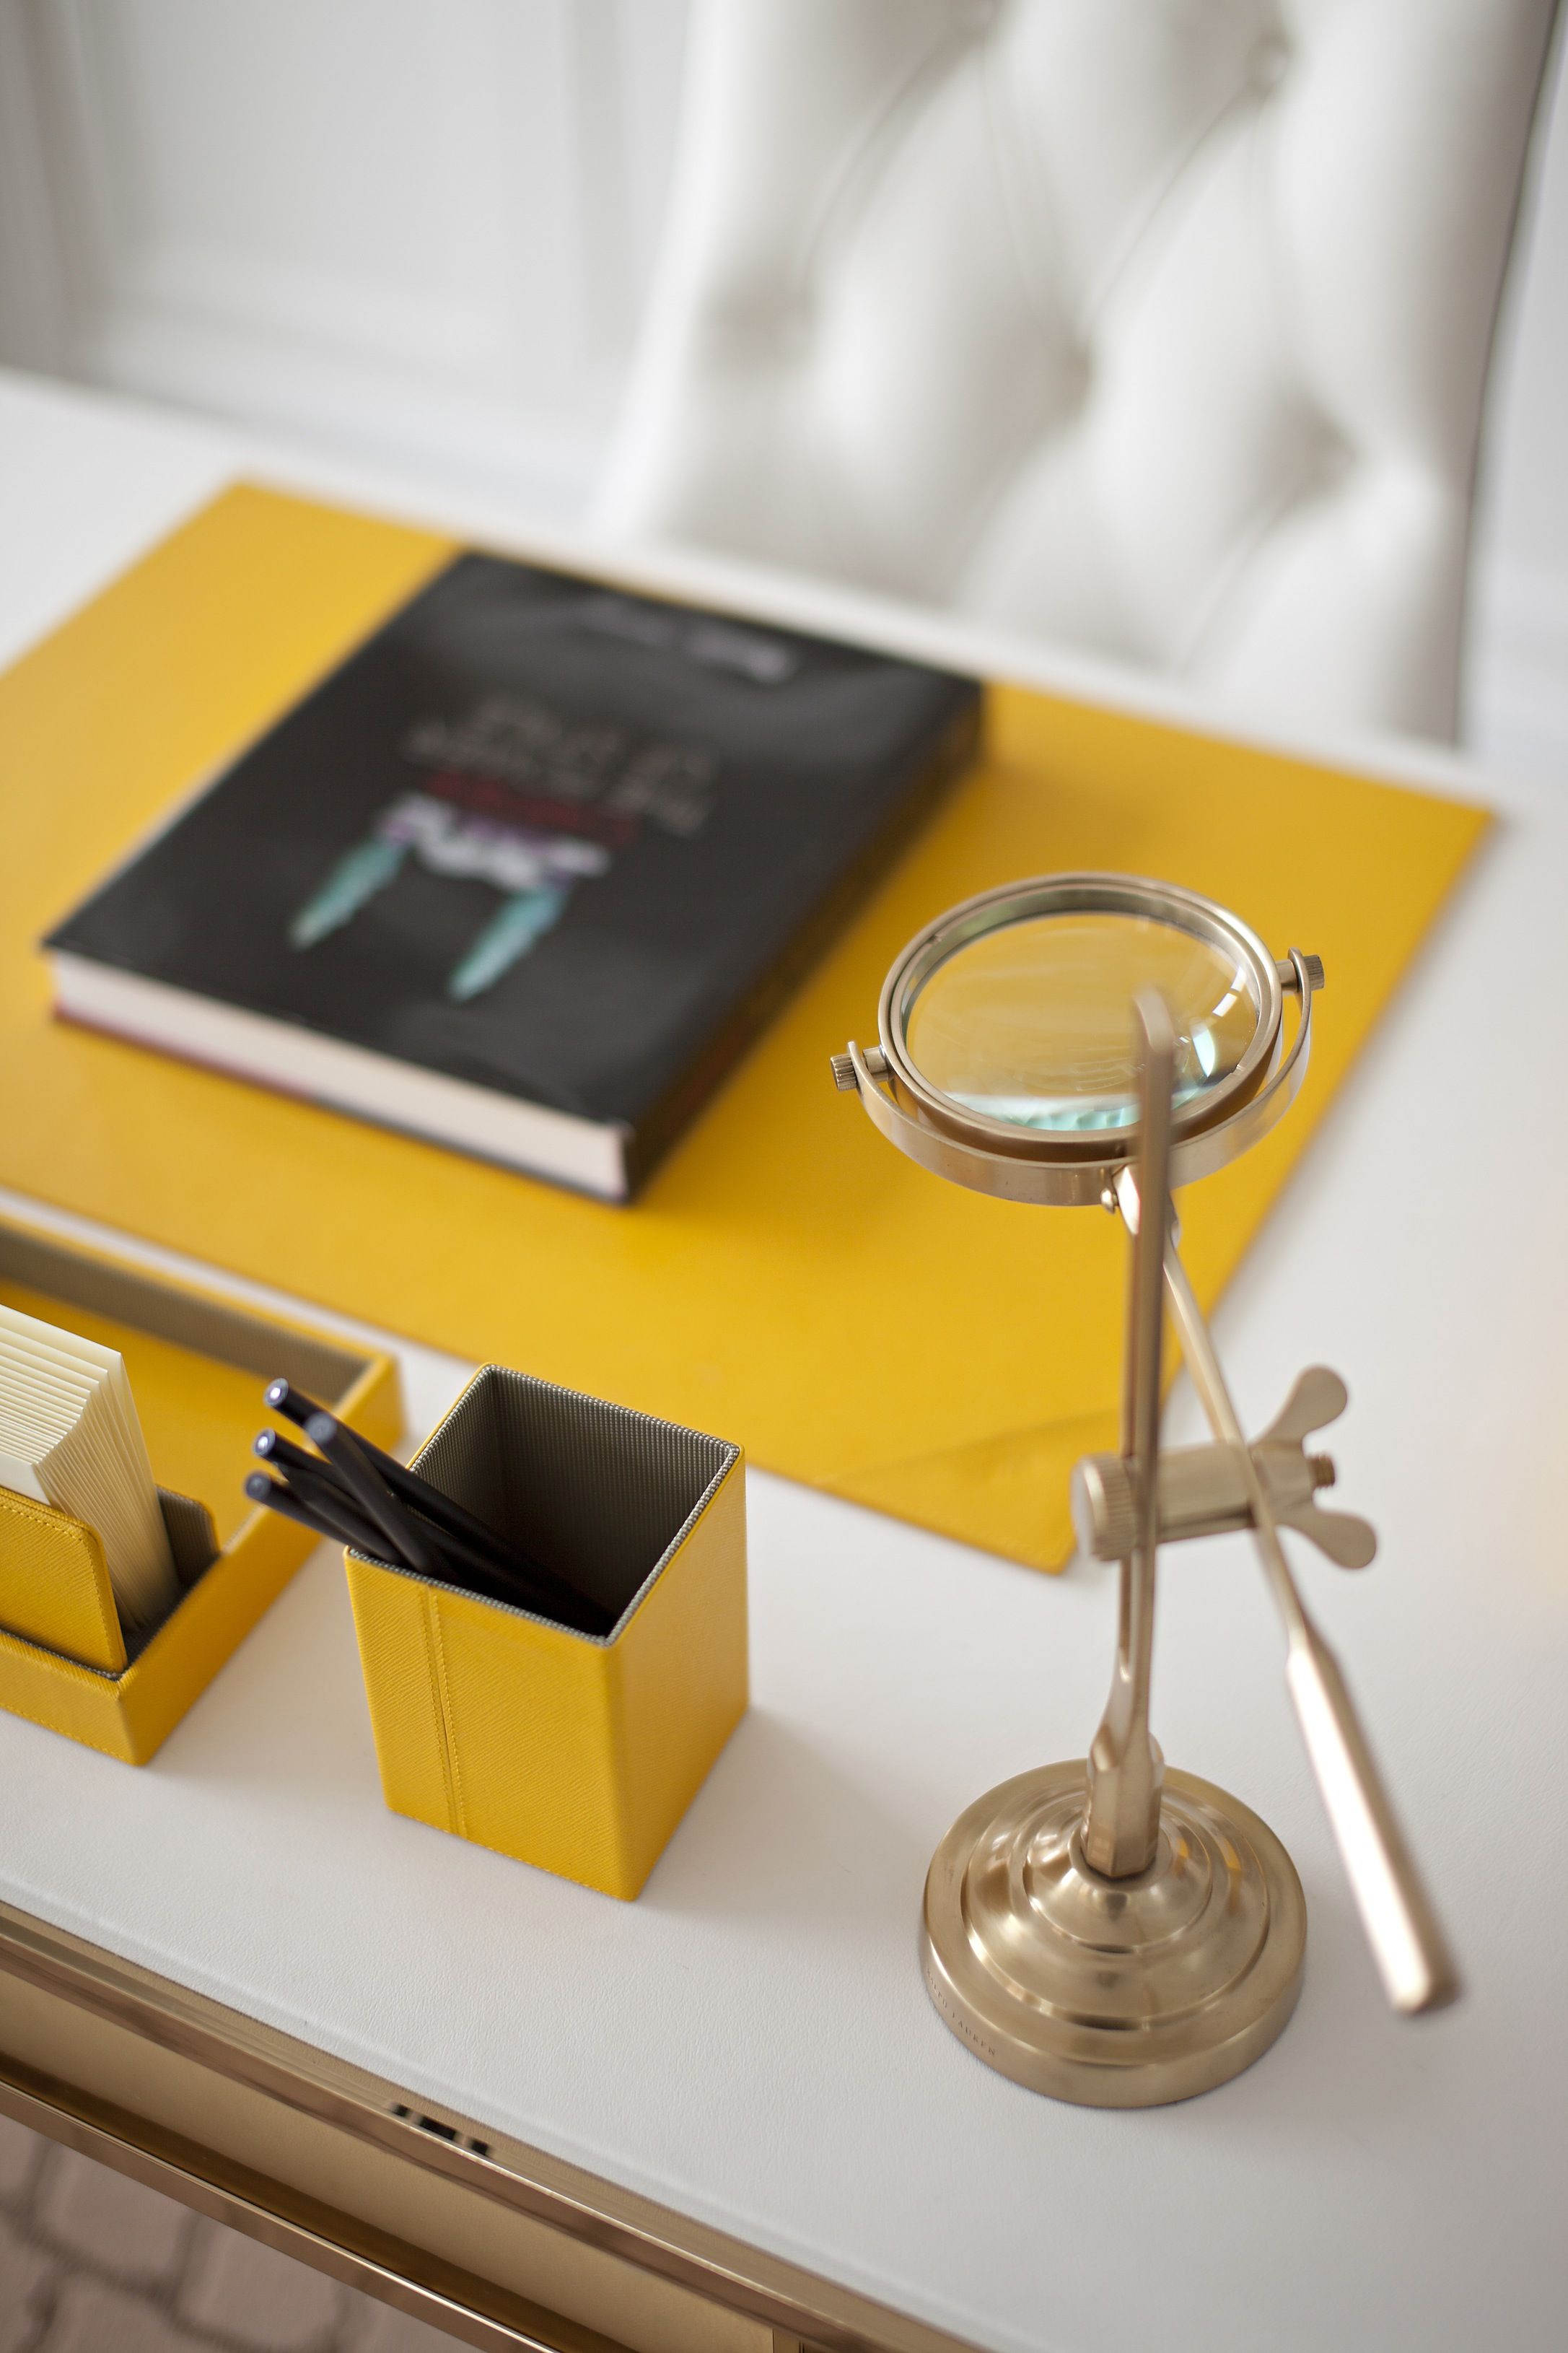 office desk decoration items colorful office decorative accessories desk items yellow interior art deco interiors pin by ricky ma on 01a pinterest decor room